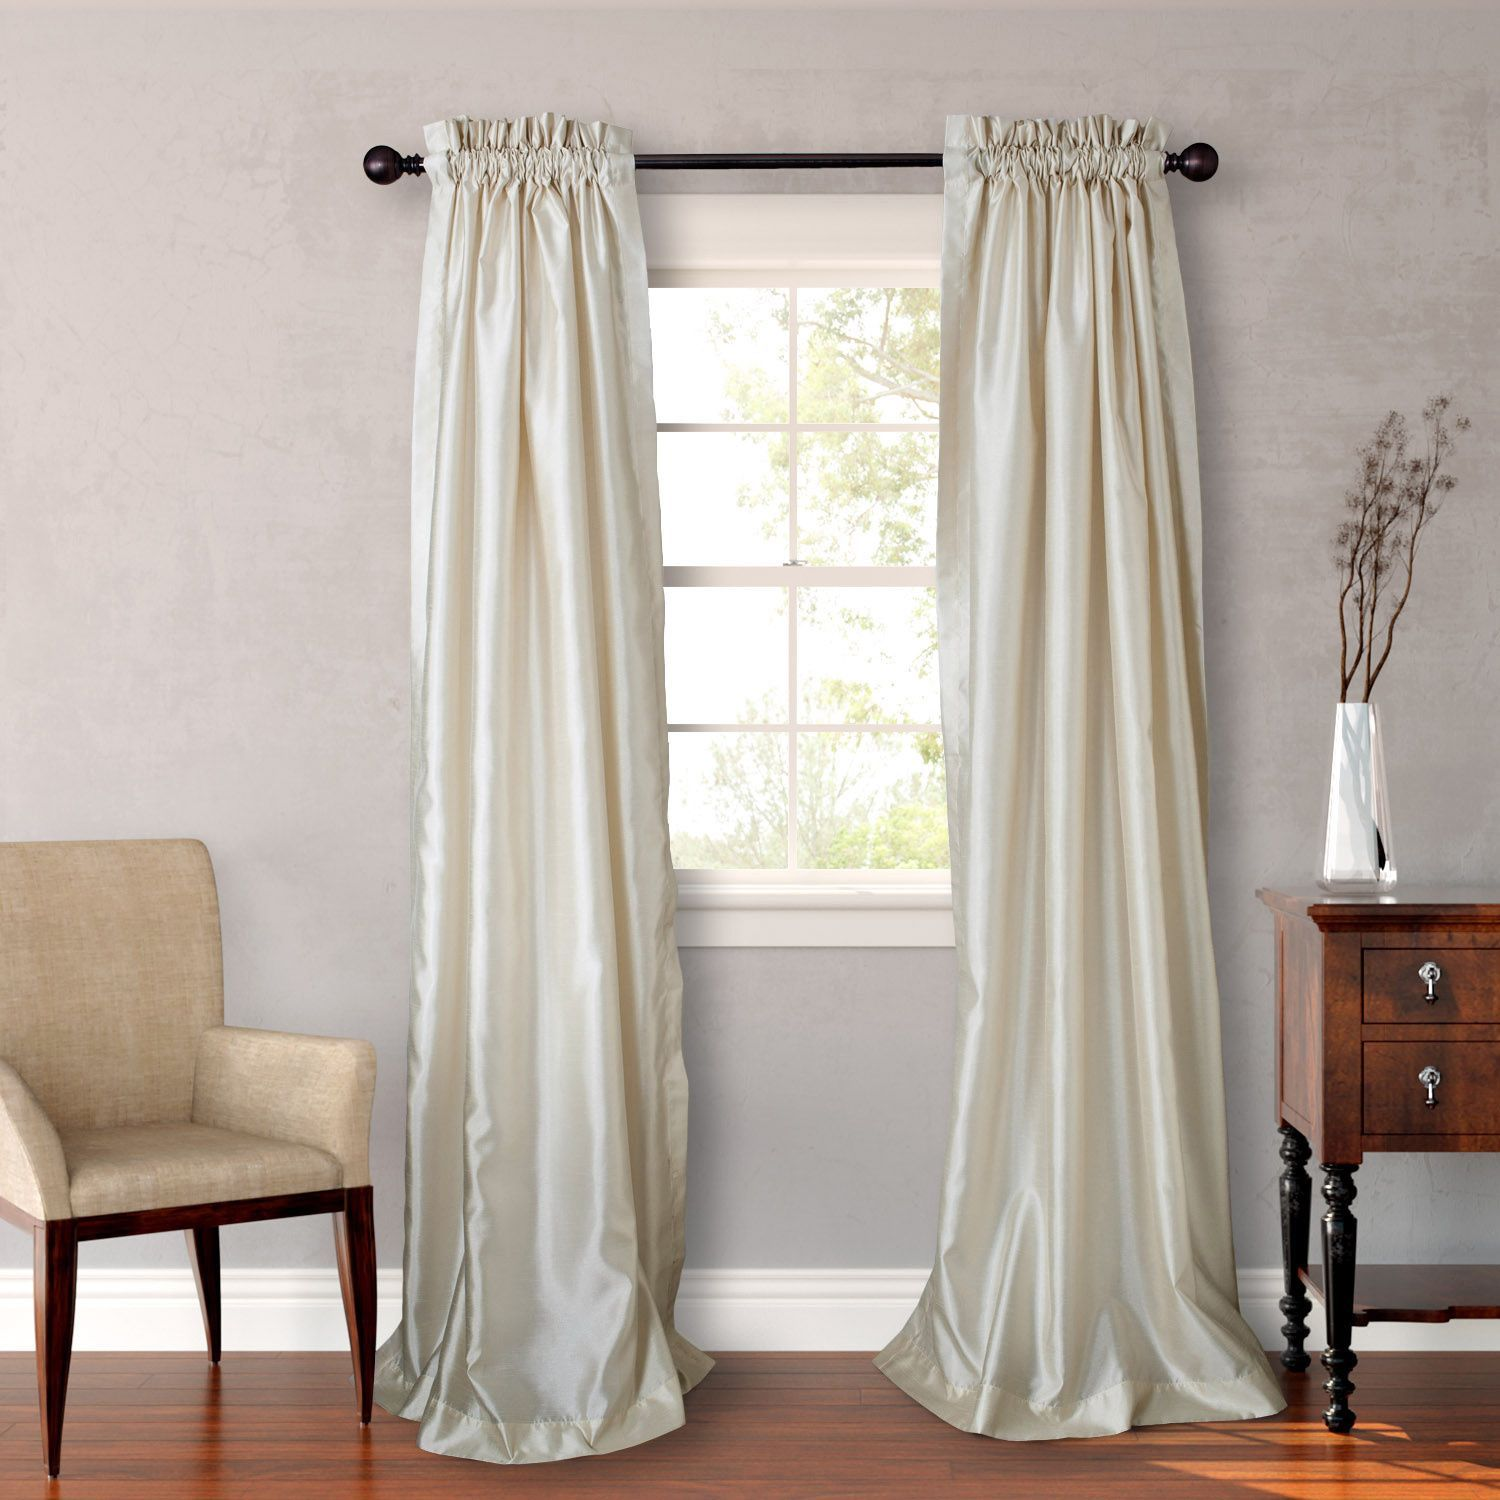 curtains velvet teal of grommet by faux concept custom stunning silk curtain blueommet full arcadia clematis customfaux header drapes eyelet lined images size dupioni w curtainsfaux canopy